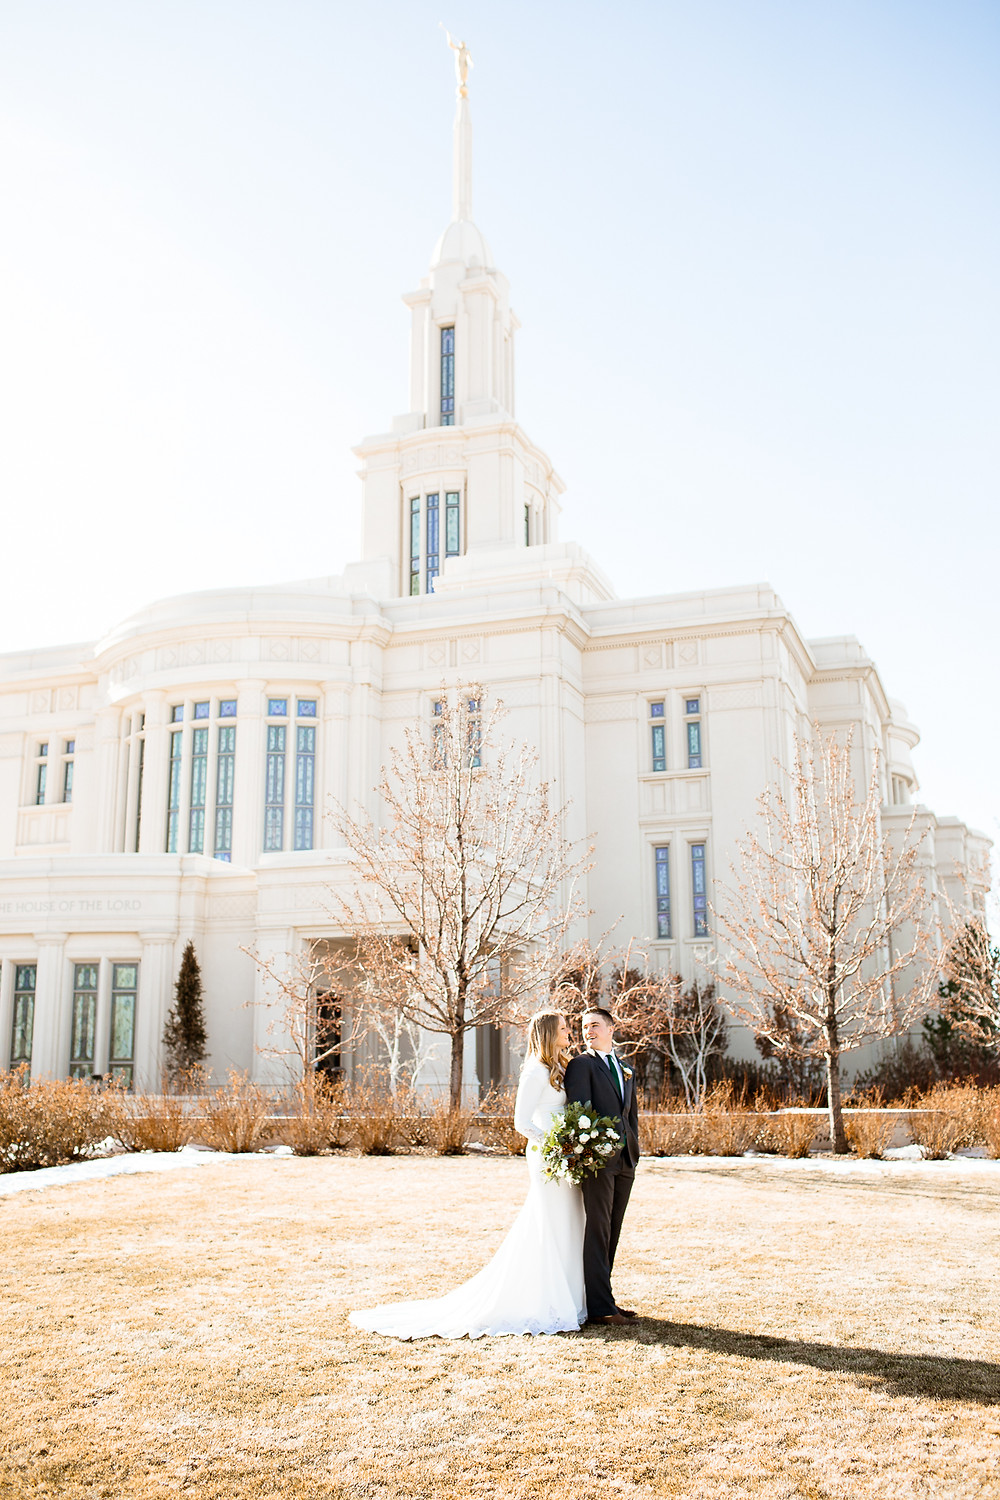 bride and groom smiling at each other on payson, utah temple lawn